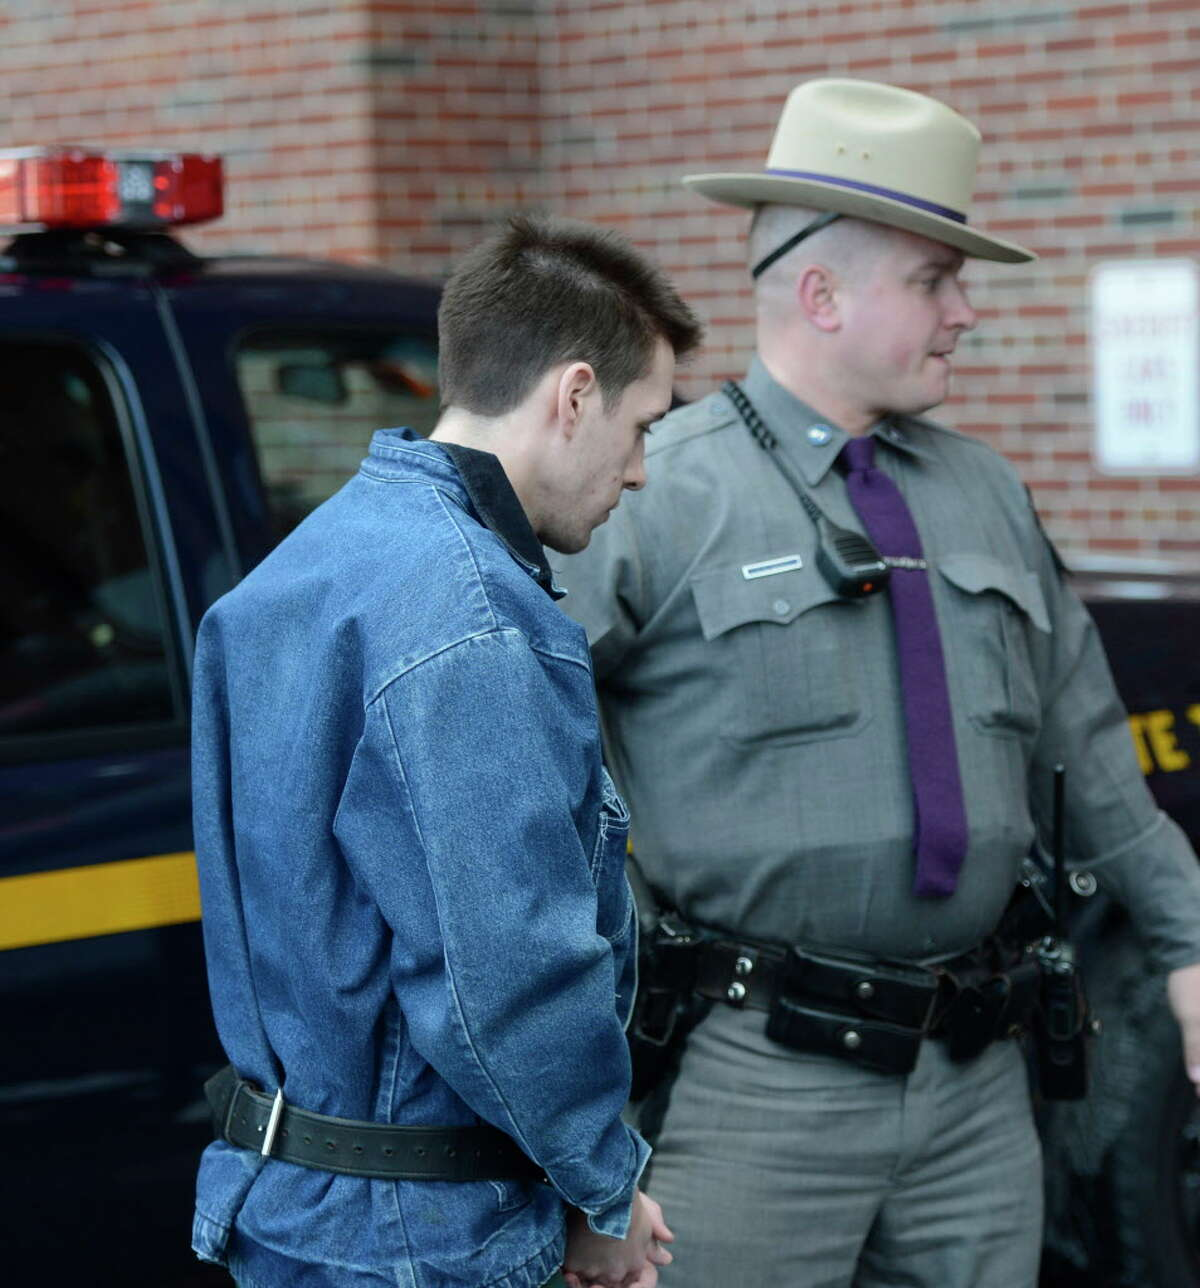 Dennis Drue, age 22, is led from a State Police car Monday, Jan. 7, 2013, to the Saratoga County Courthouse in Ballston Spa, N.Y. Drue allegedly drove the car which rear-ended an SUV killing two popular Shenendehowa High School students on the Northway last Dec. (Skip Dickstein/Times Union)